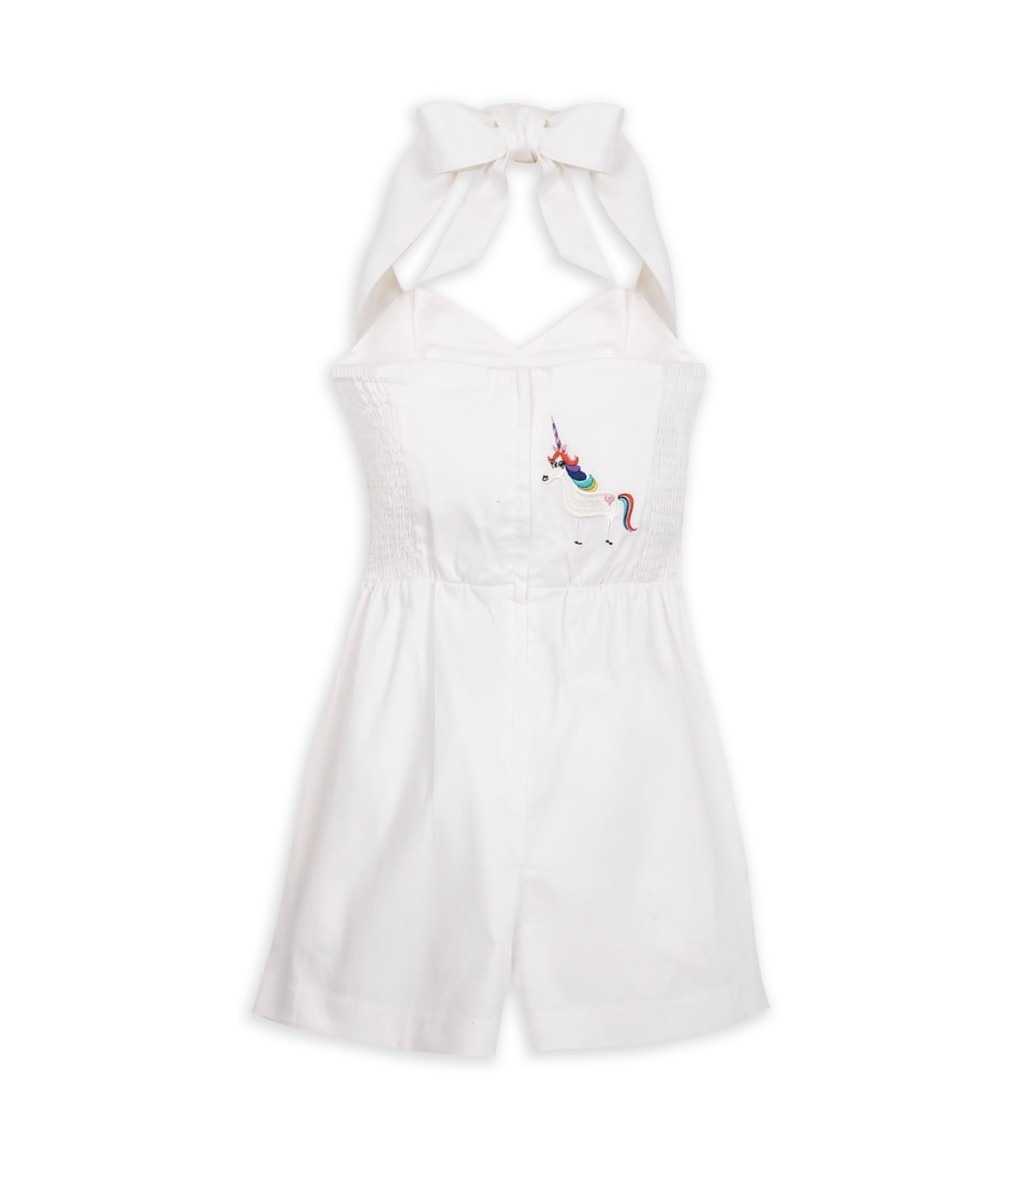 Inside-Out Romper with Removable Skirt on shopDisney! 3